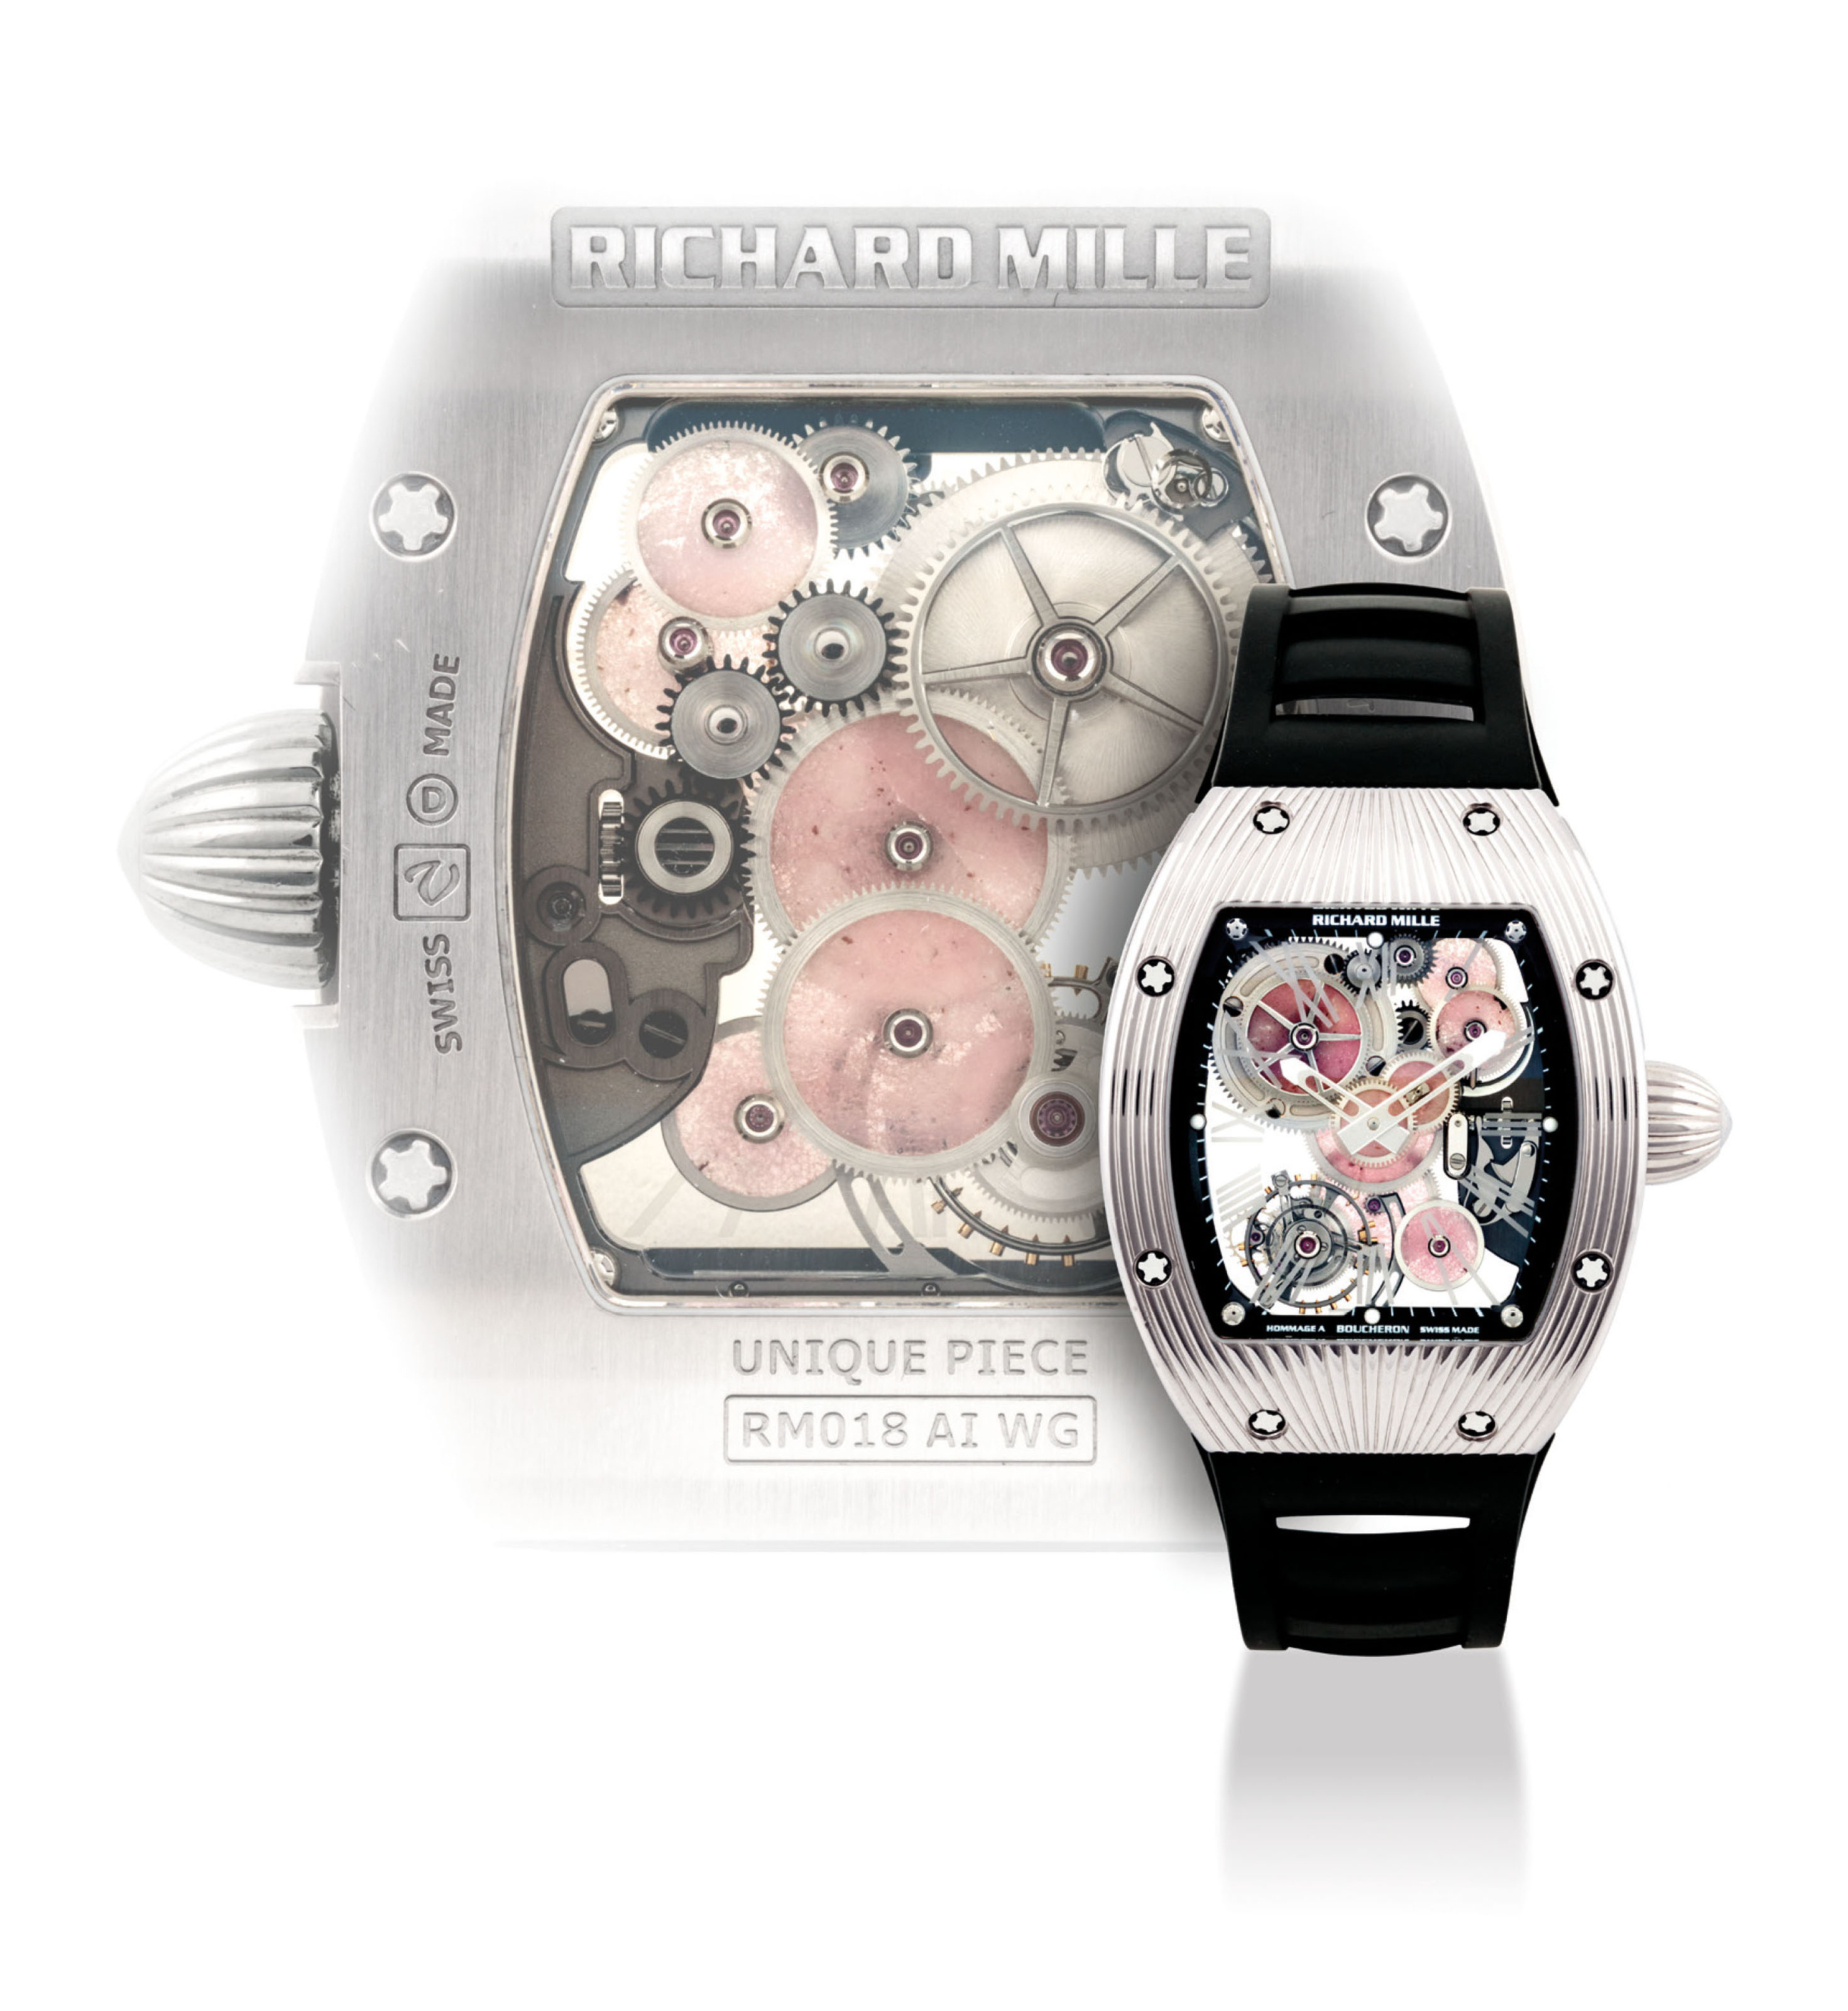 RICHARD MILLE. A UNIQUE AND VERY FINE 18K WHITE GOLD TONNEAU-SHAPED SKELETONISED TOURBILLON WRISTWATCH WITH PINK HARD STONE-SET WHEELS, MADE TO COMMEMORATE THE 150TH ANNIVERSARY OF BOUCHERON